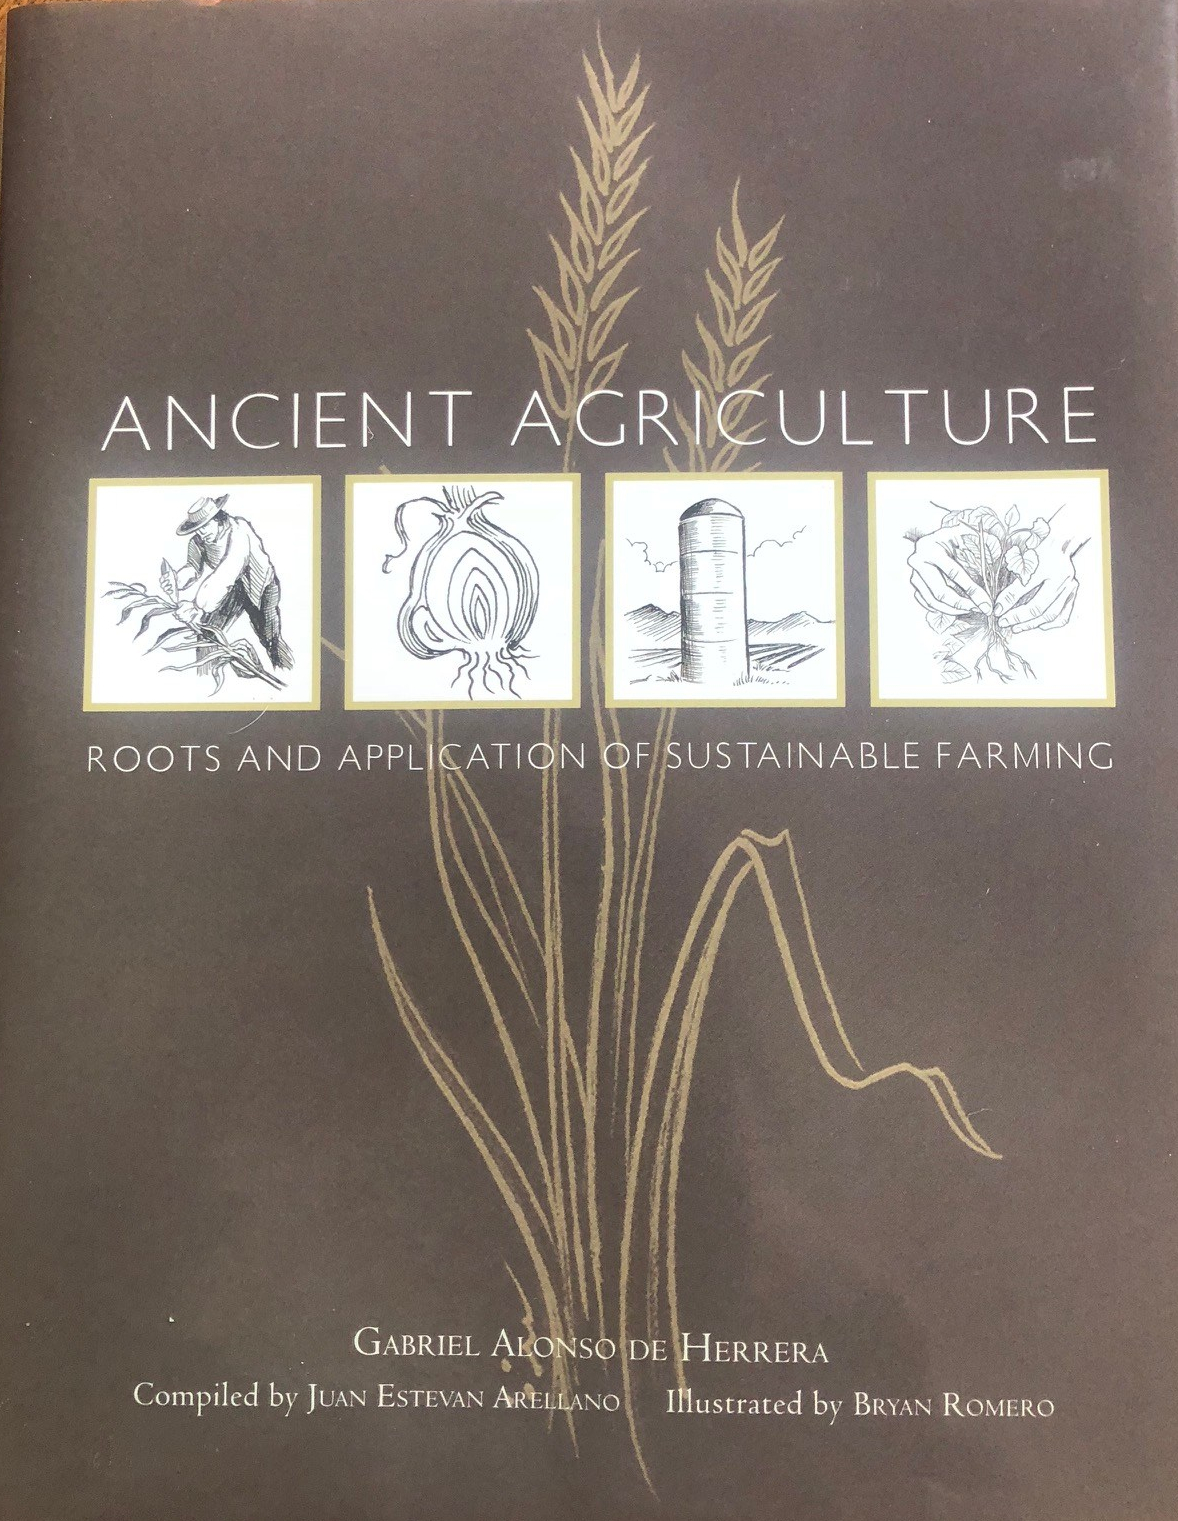 Ancient Agriculture - Roots and Application of Sustainable Farming